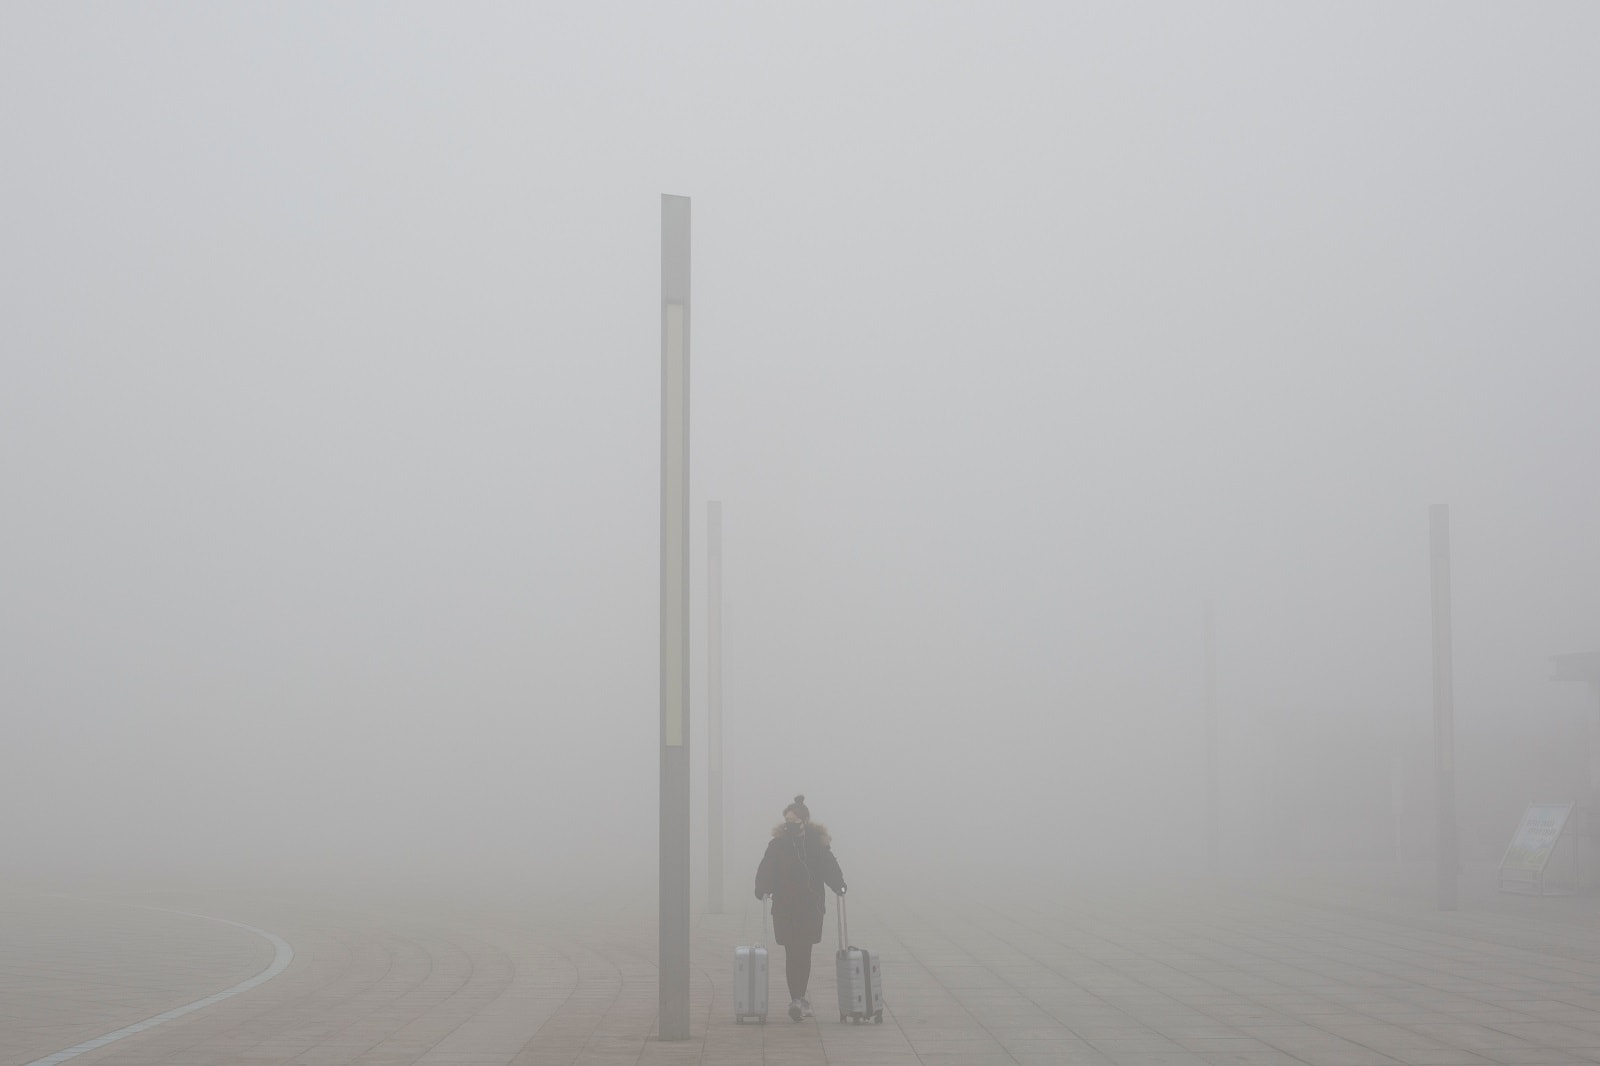 A woman walks outside a high-speed railway station on a hazy morning in Zhengzhou, Henan province, China February 21, 2019. REUTERS/Thomas Peter